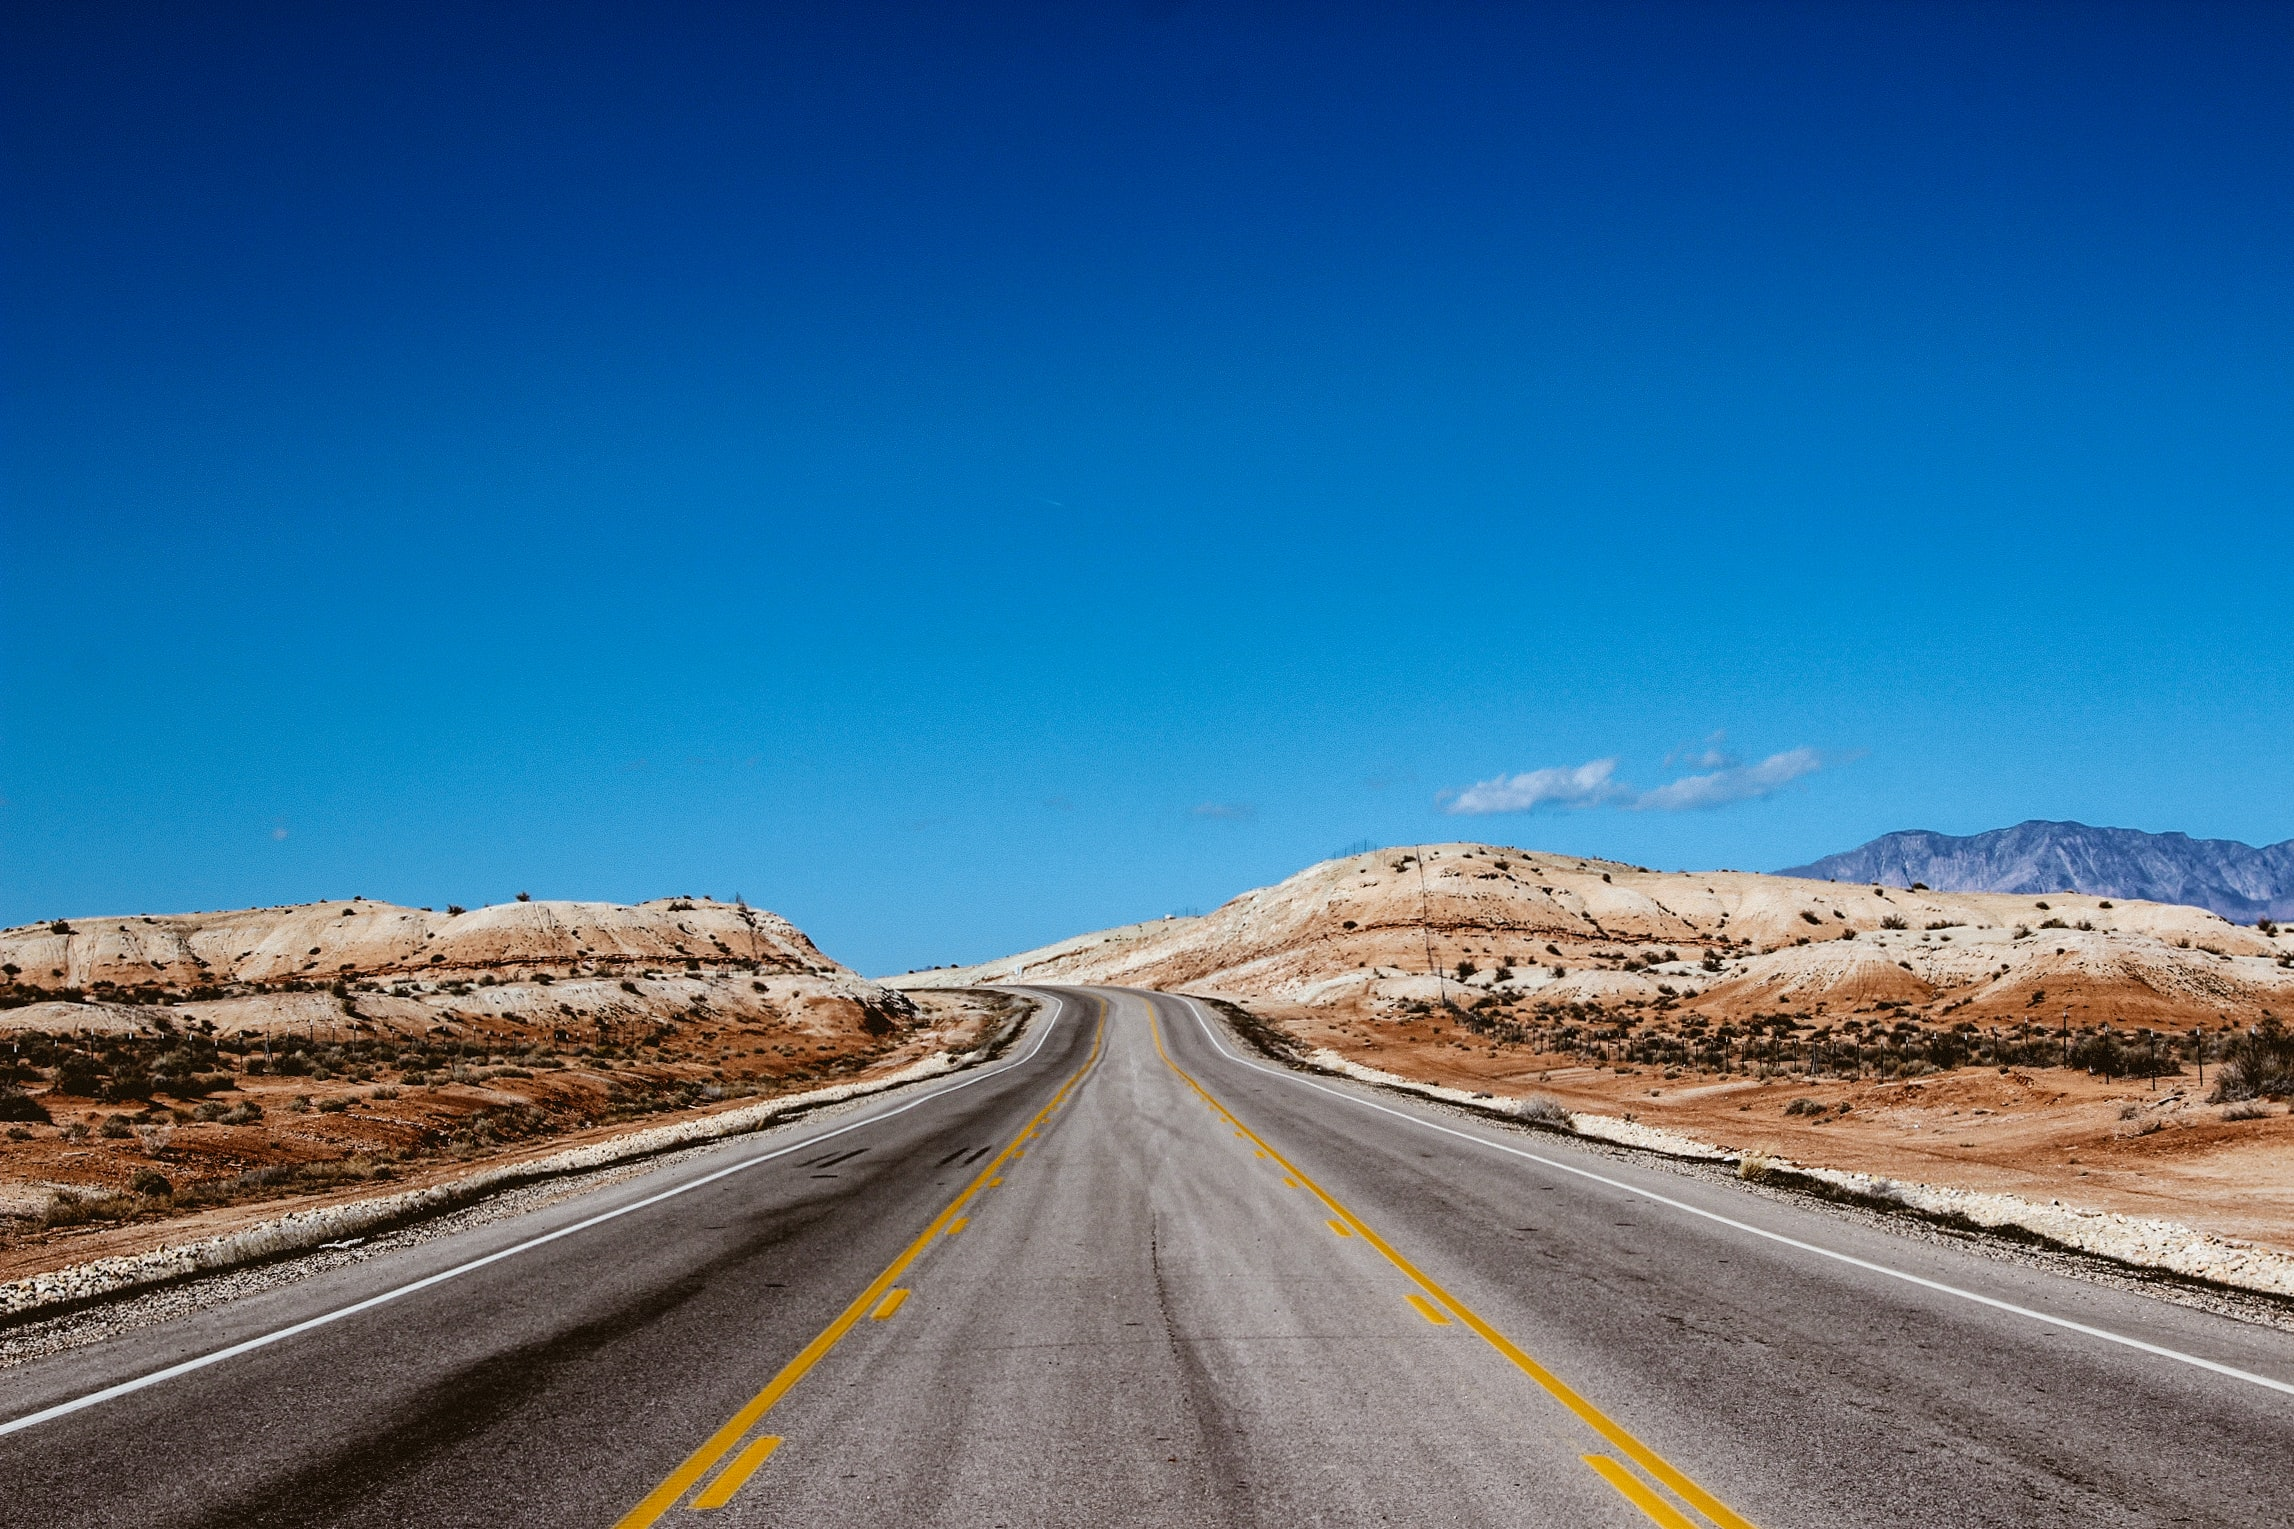 A desert road that goes to the horizon on a day with blue skies